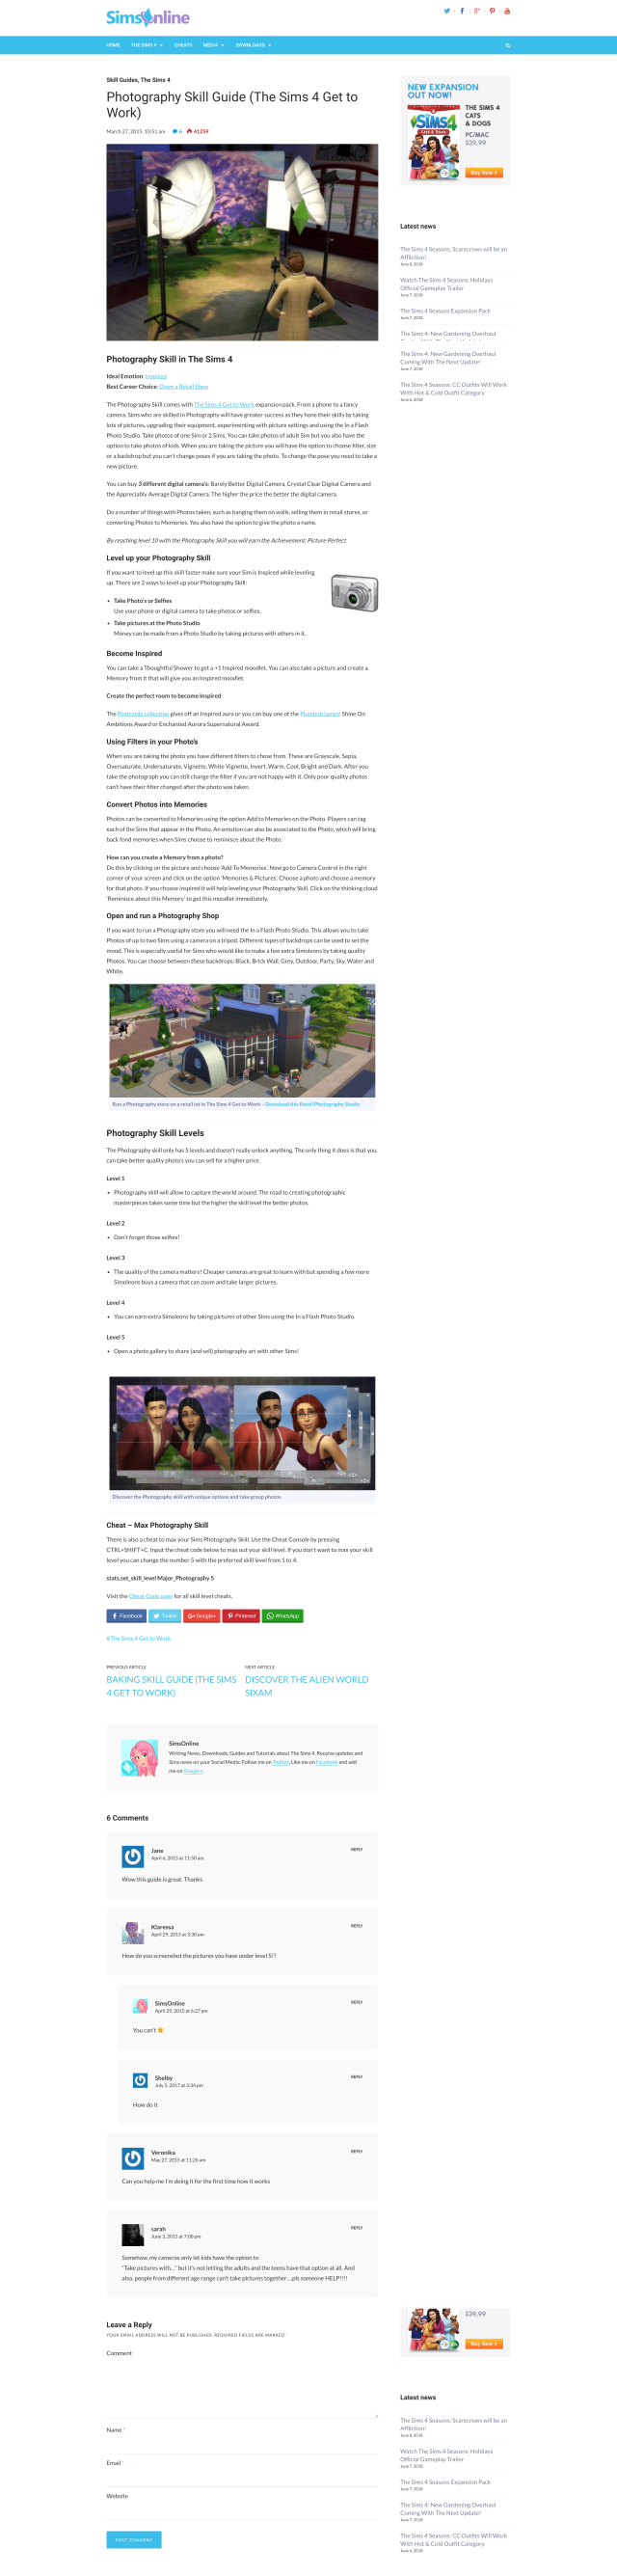 screencapture-sims-online-sims-4-photography-skill-guide-2018-06-09-10_47_30.png